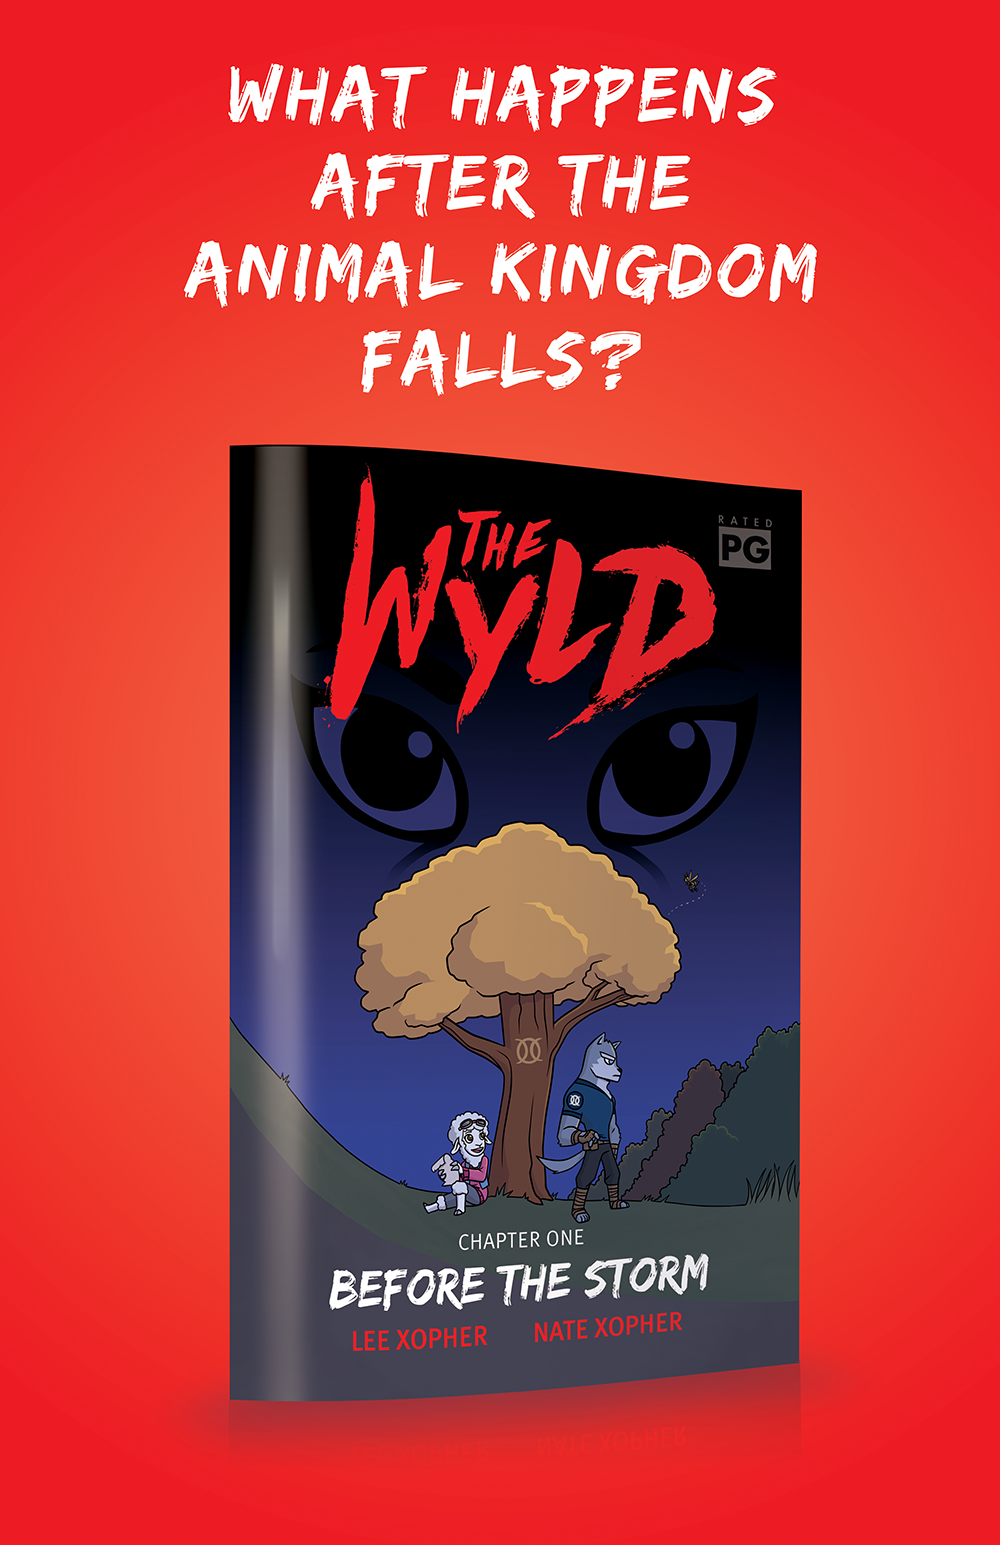 the-wyld-chapter-1-by-lee-xopher-nate-xopher.png